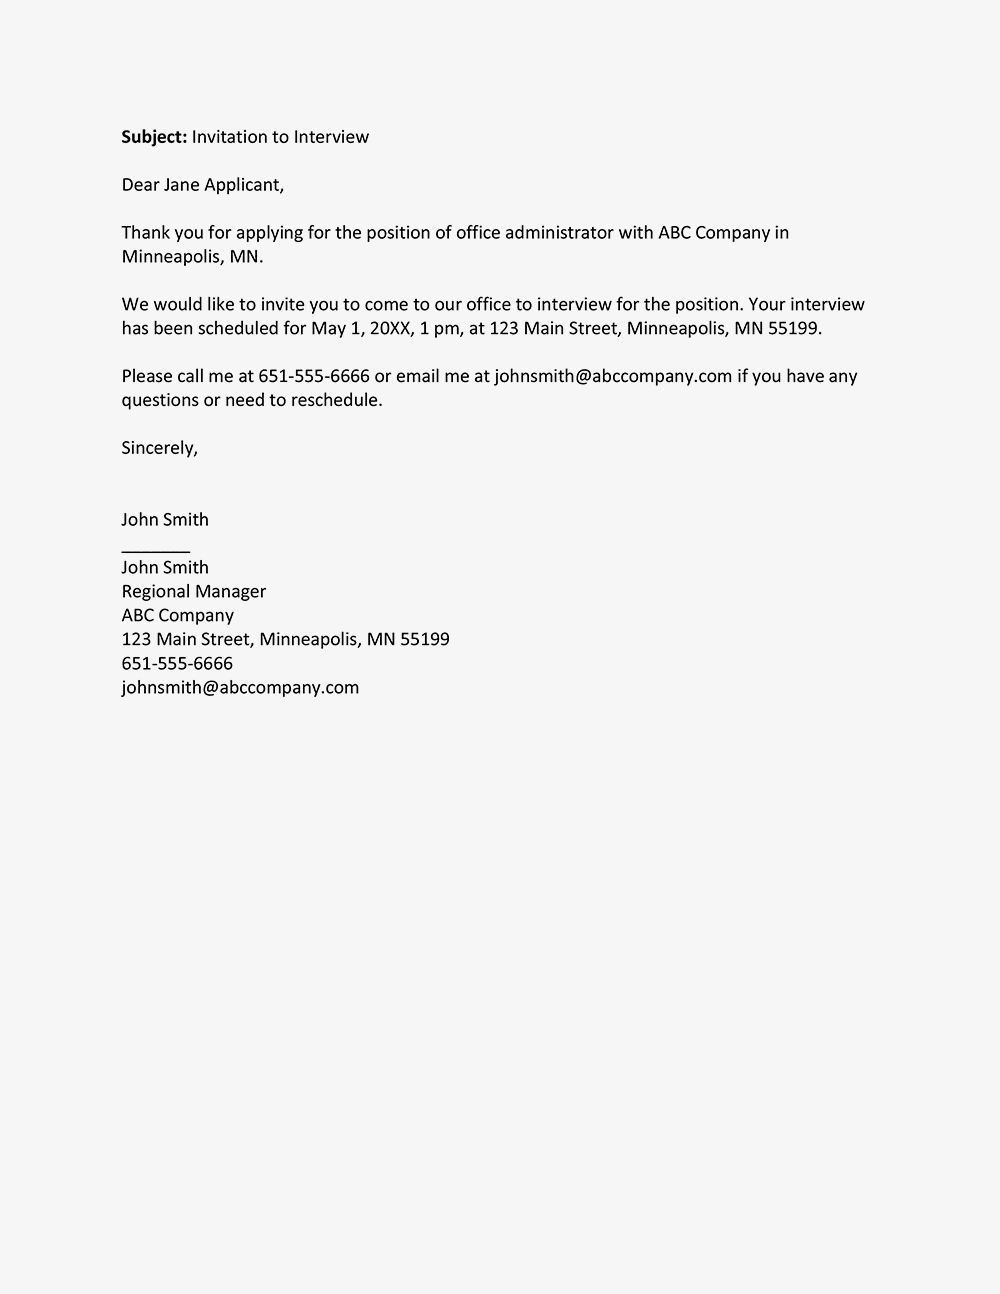 Screenshot Of A Job Interview Invitation Letter Example Watch Live